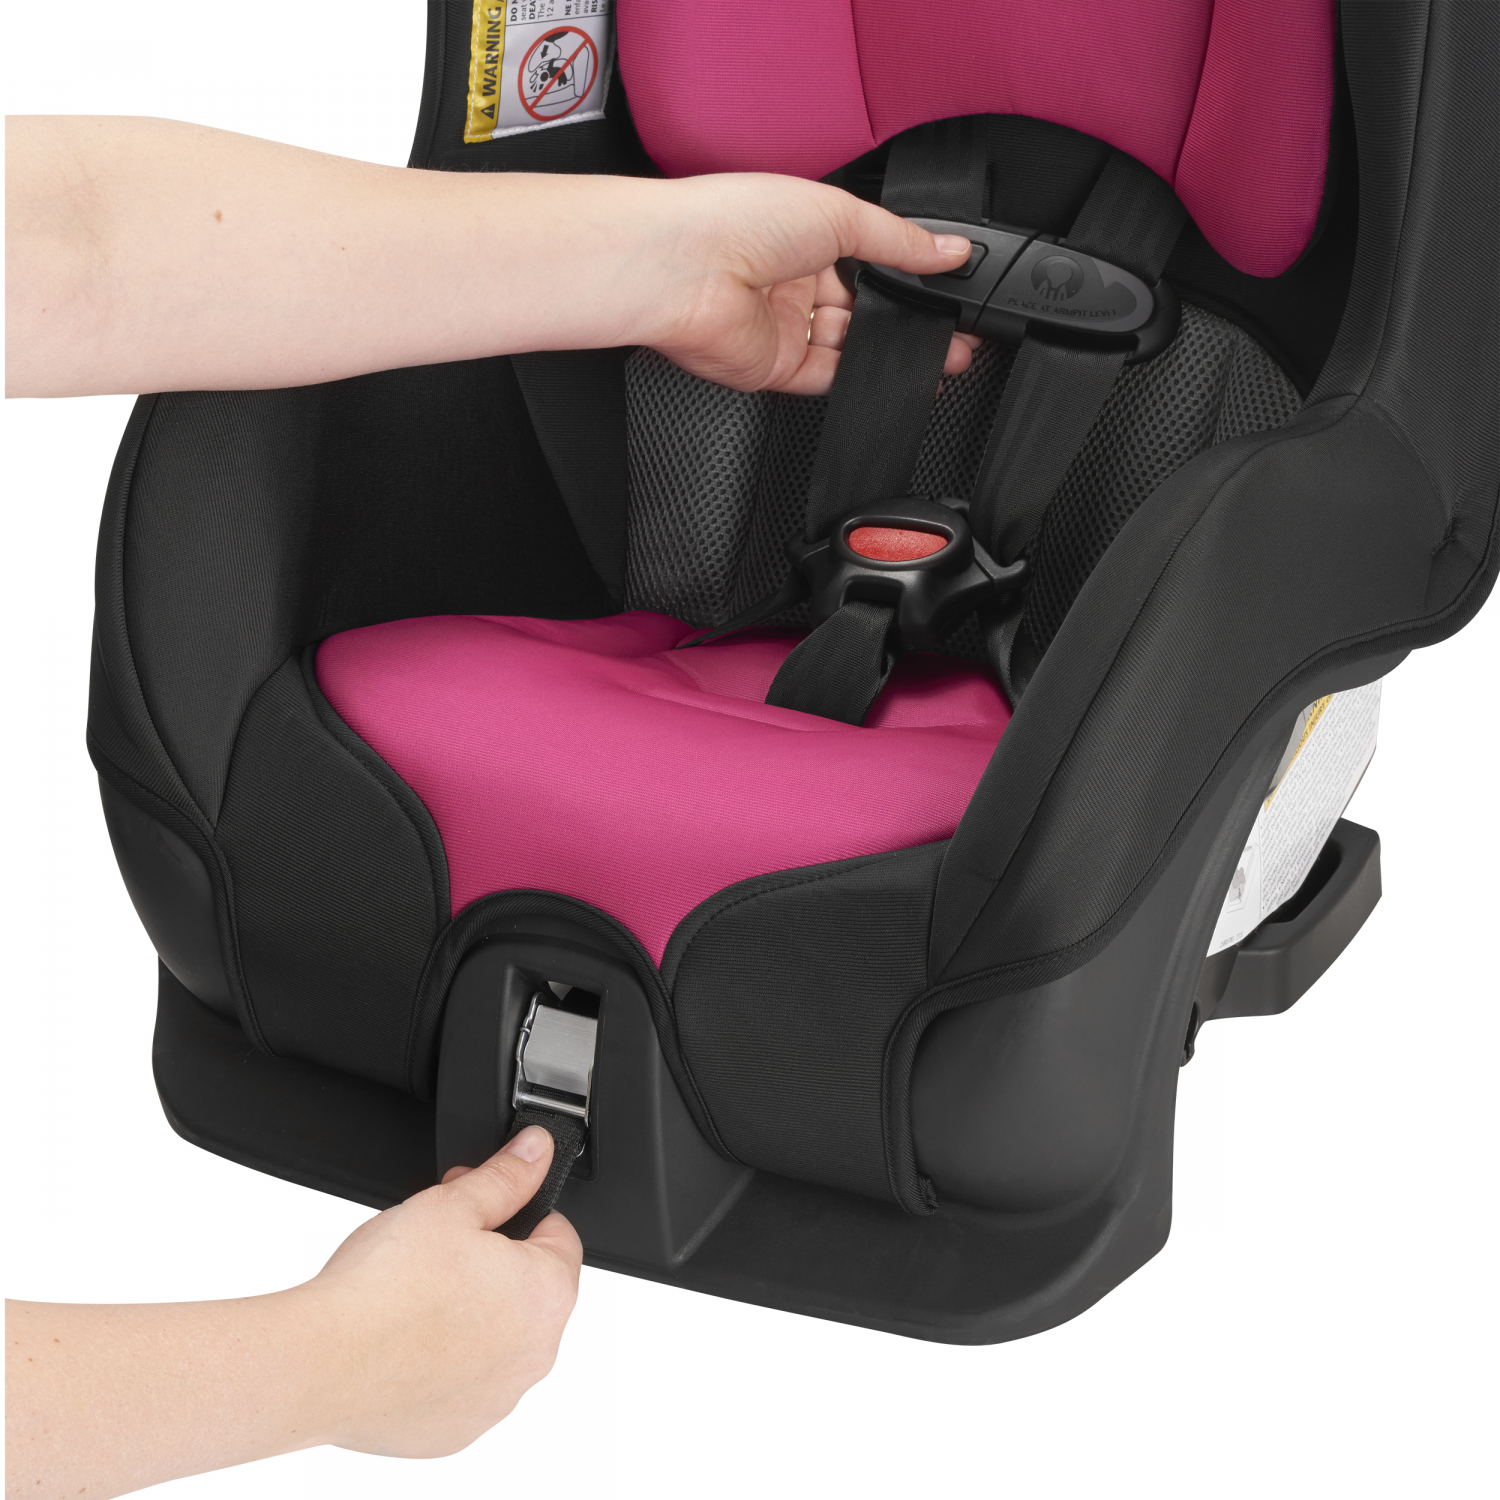 Convertible Car Seat Child Secure LX Compact Size ...